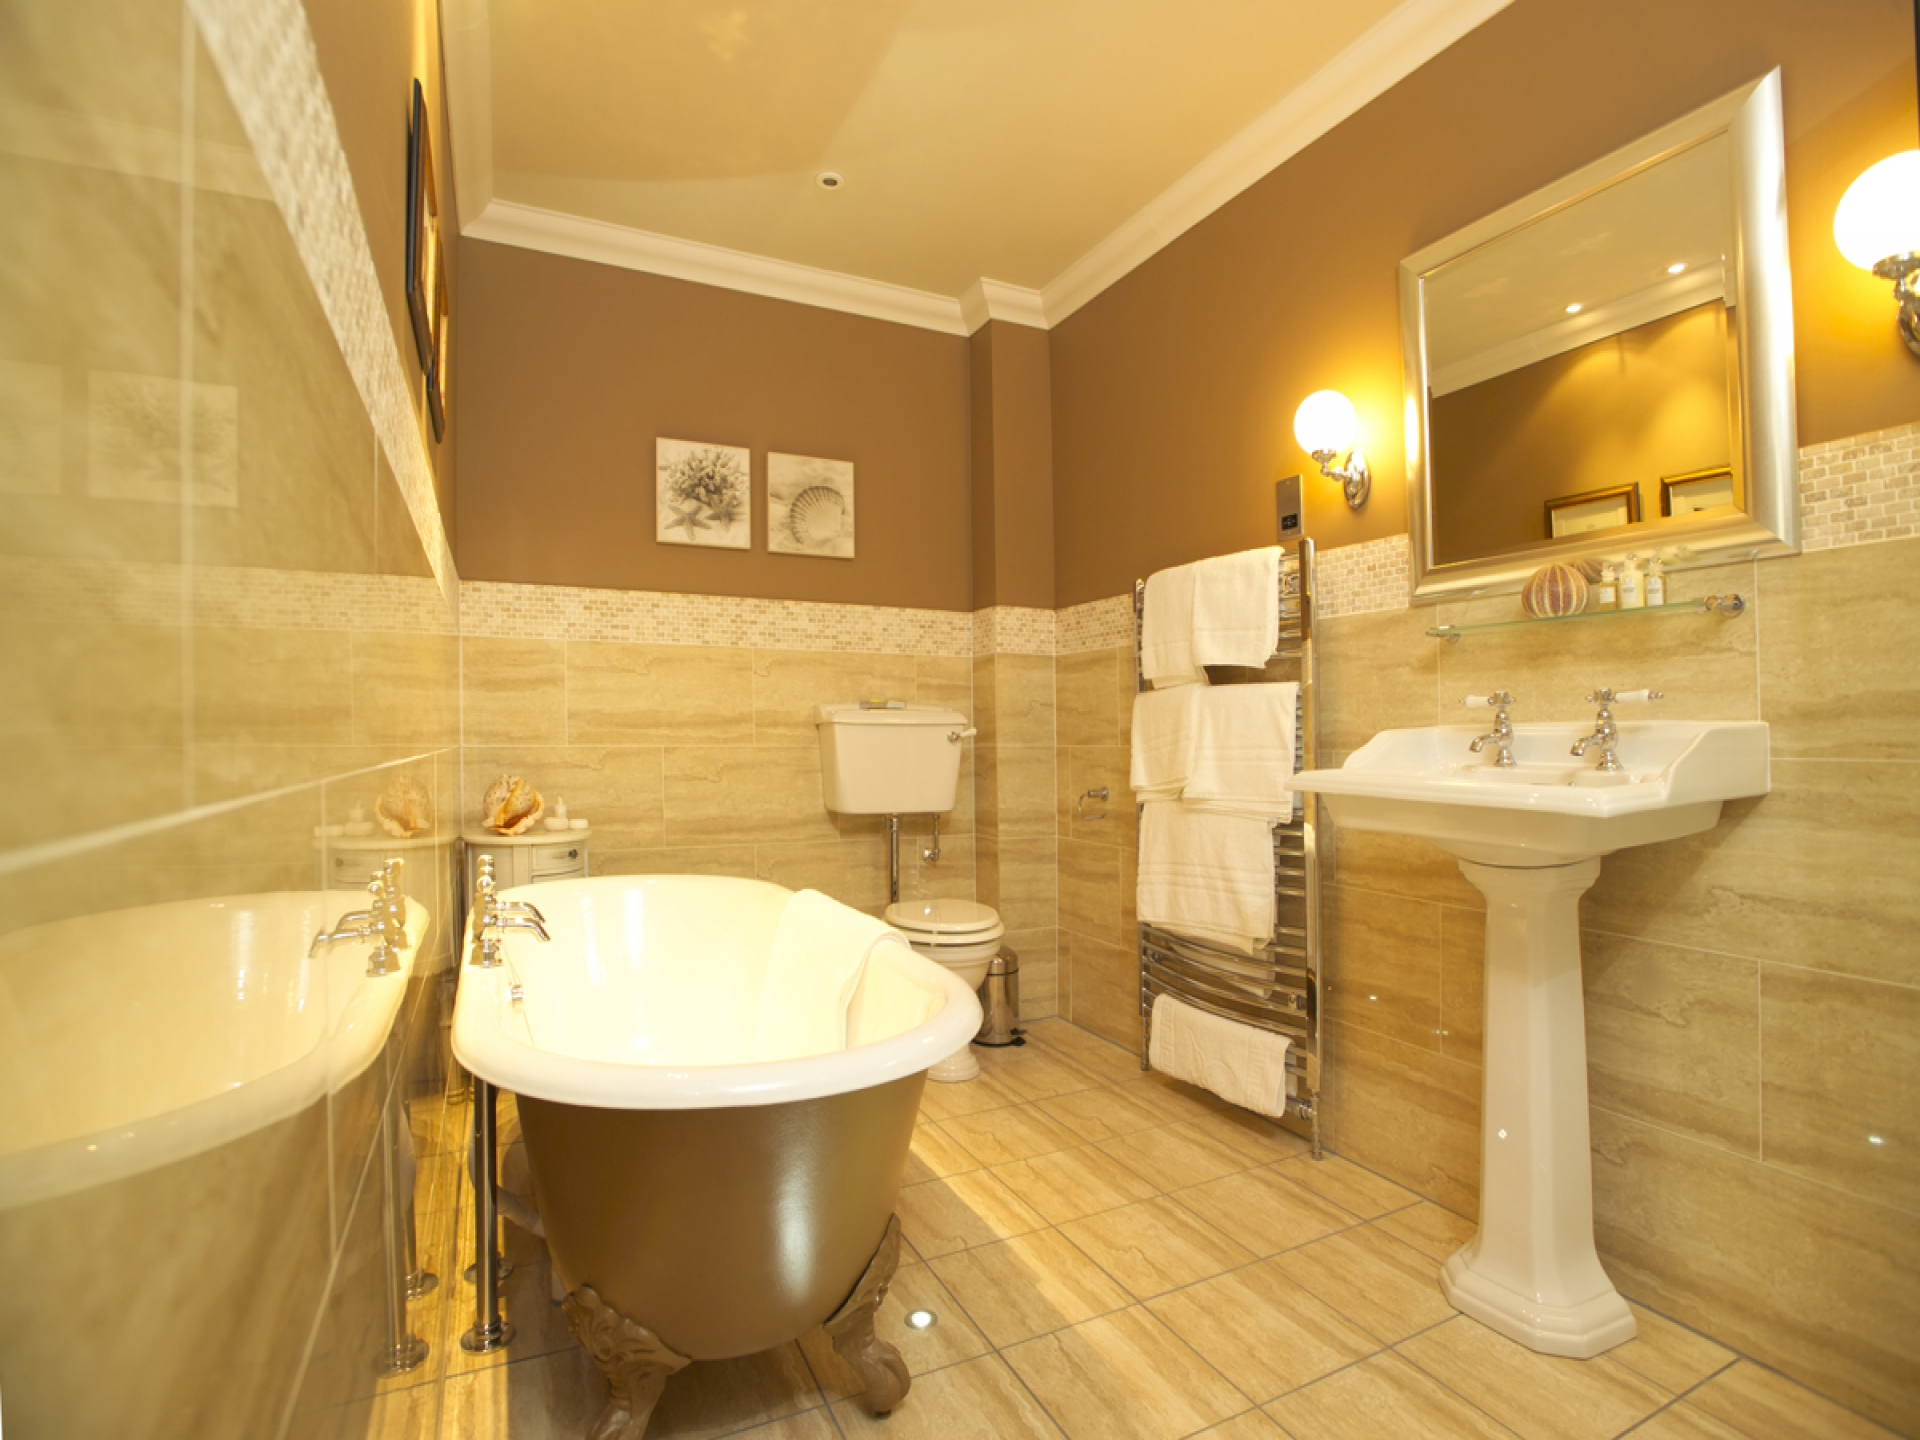 inspiration-interior-vintage-bathroom-decors-with-wood-tile-bathroom-patterns-as-well-as-claw-foot-tubs-and-pedestal-sink-in-venetian-bathroom-ideas-remarkable-wood-tile-bathroom-flooring-ideas-and-p